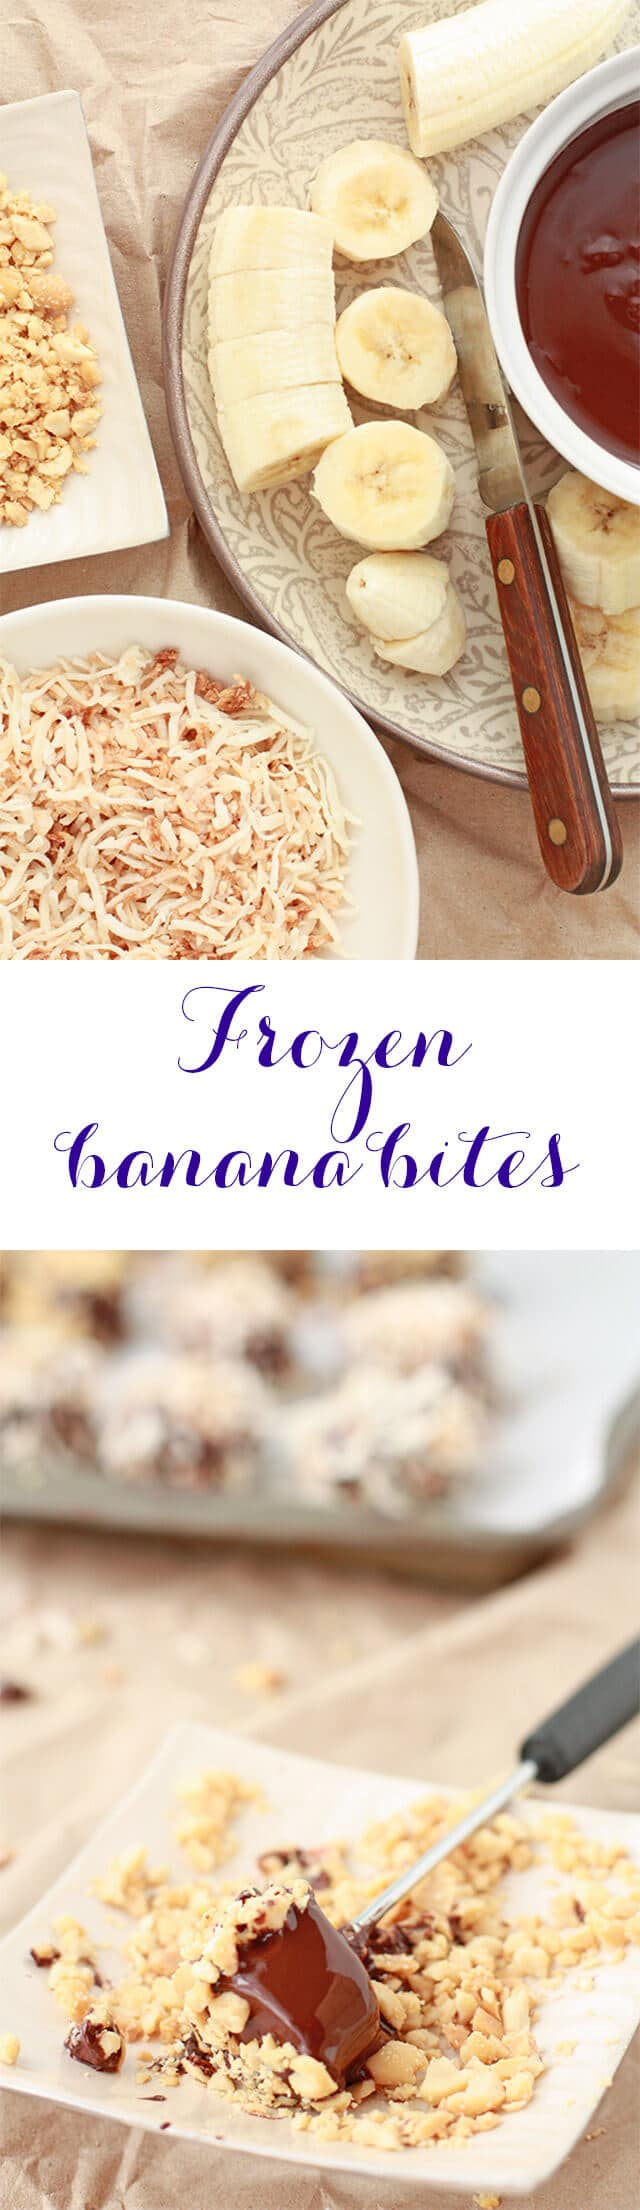 Frozen banana bites dipped in melted chocolate and toasted coconut for the perfect healthy sweet treat